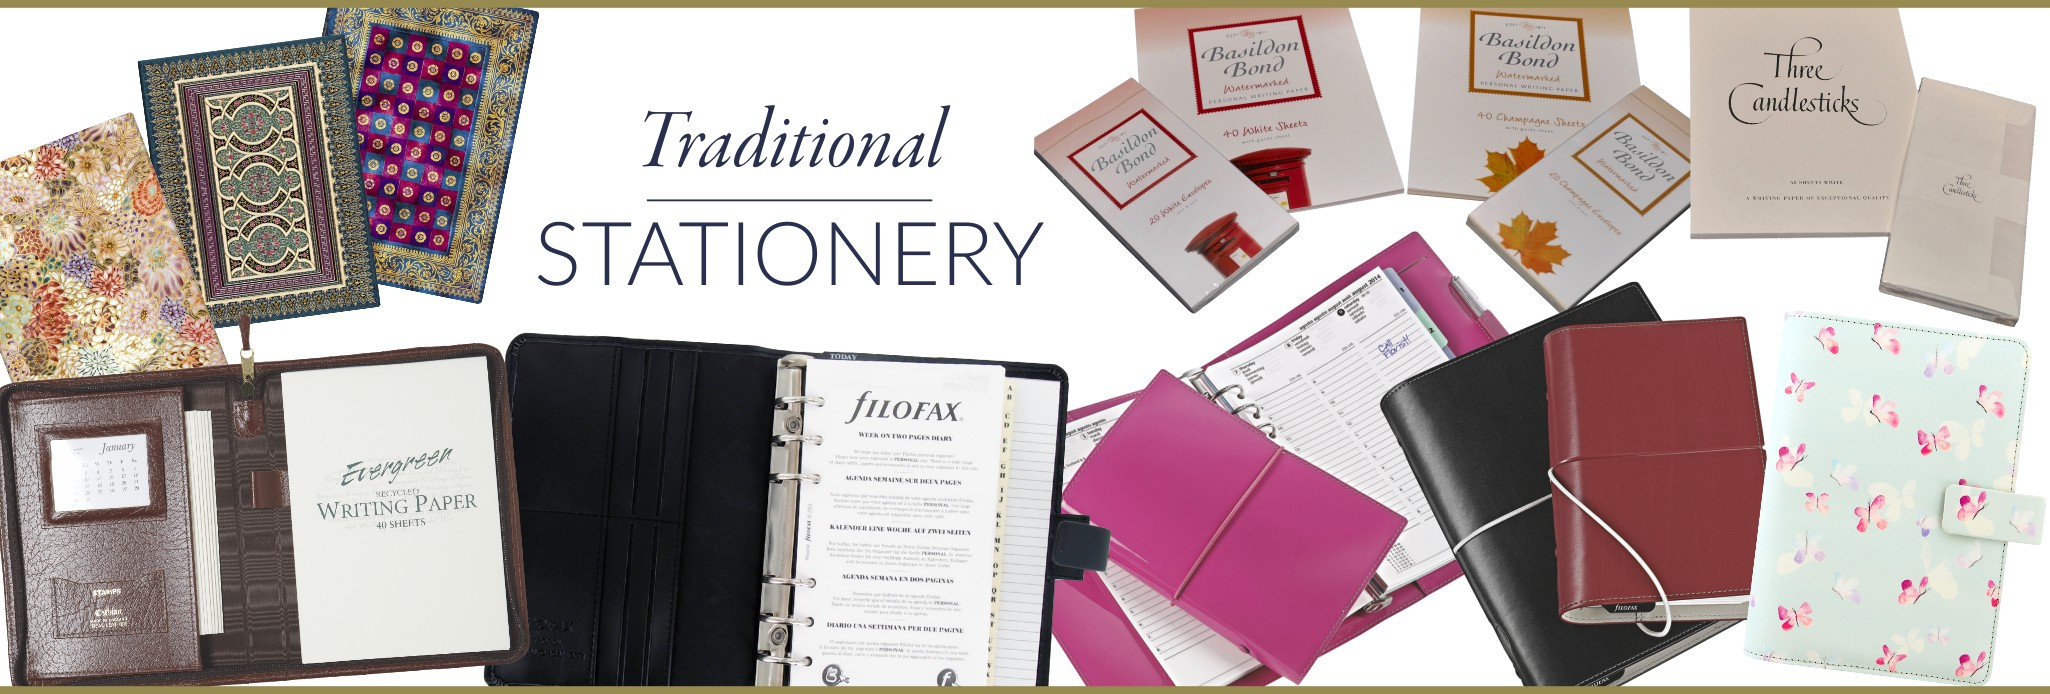 Traditional Stationery